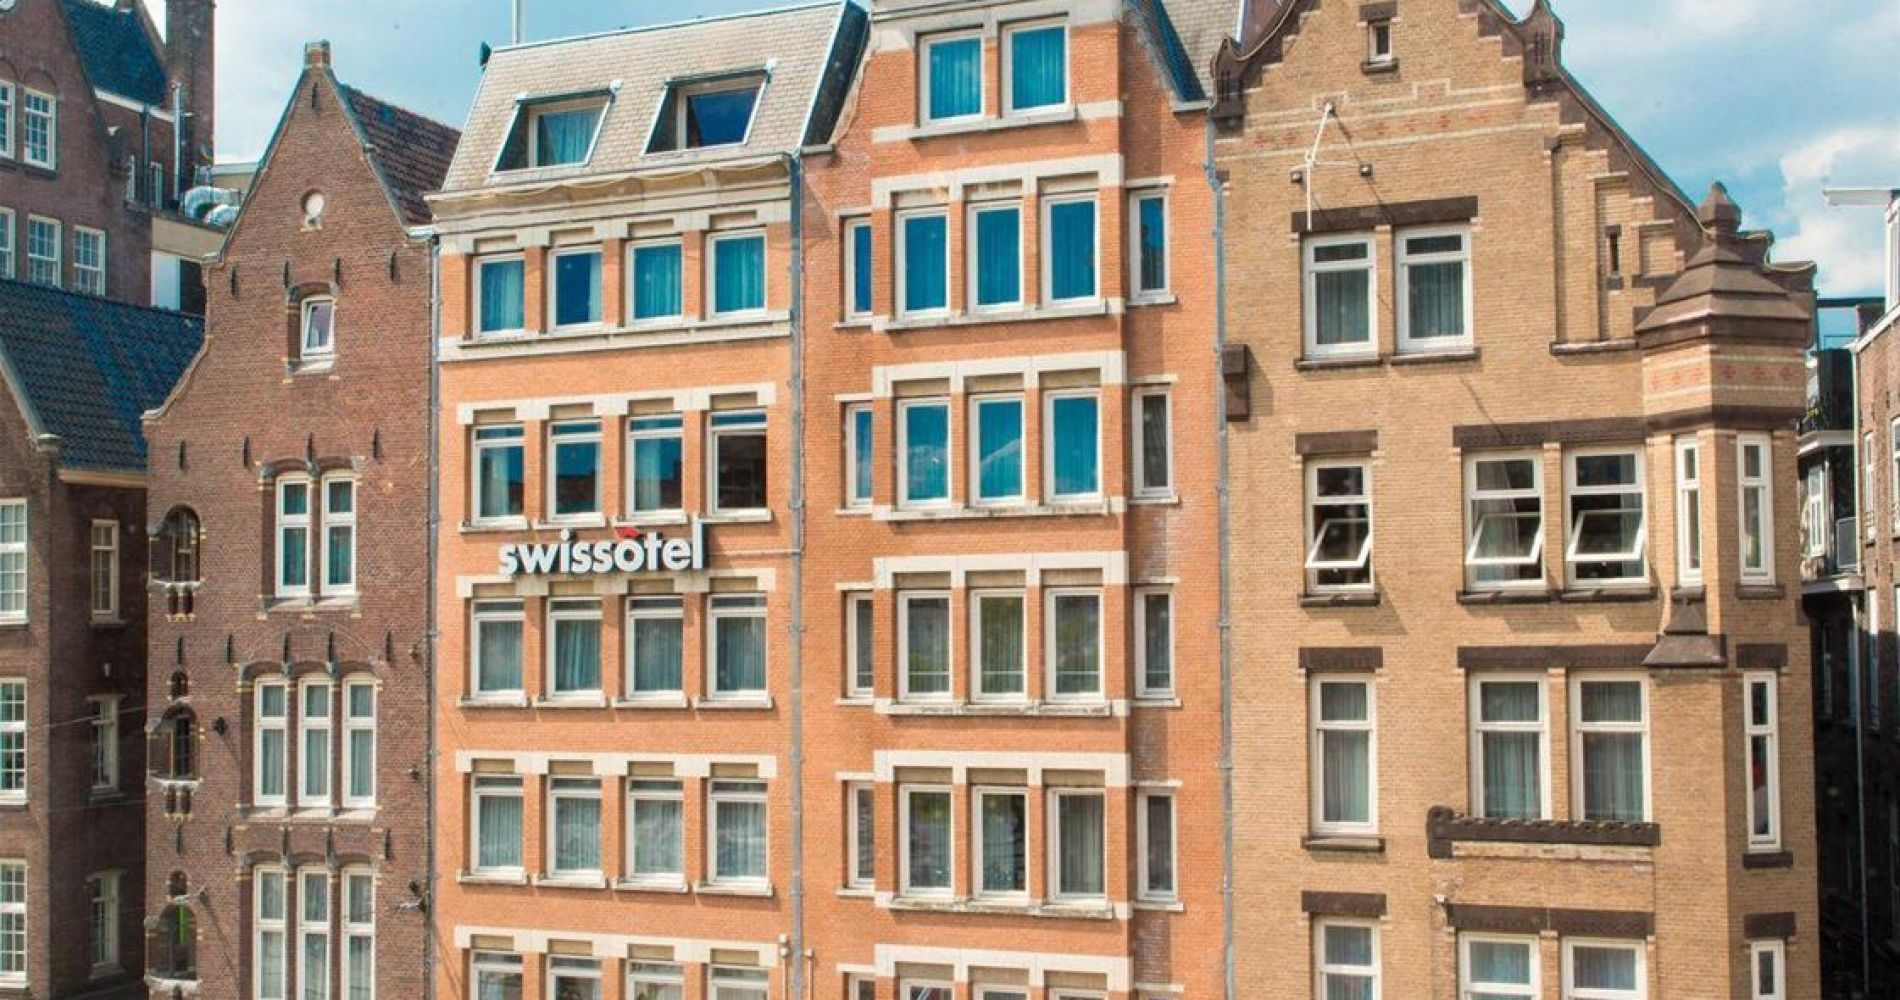 Swiss tel amsterdam general site hotel title prefix for Swissotel amsterdam